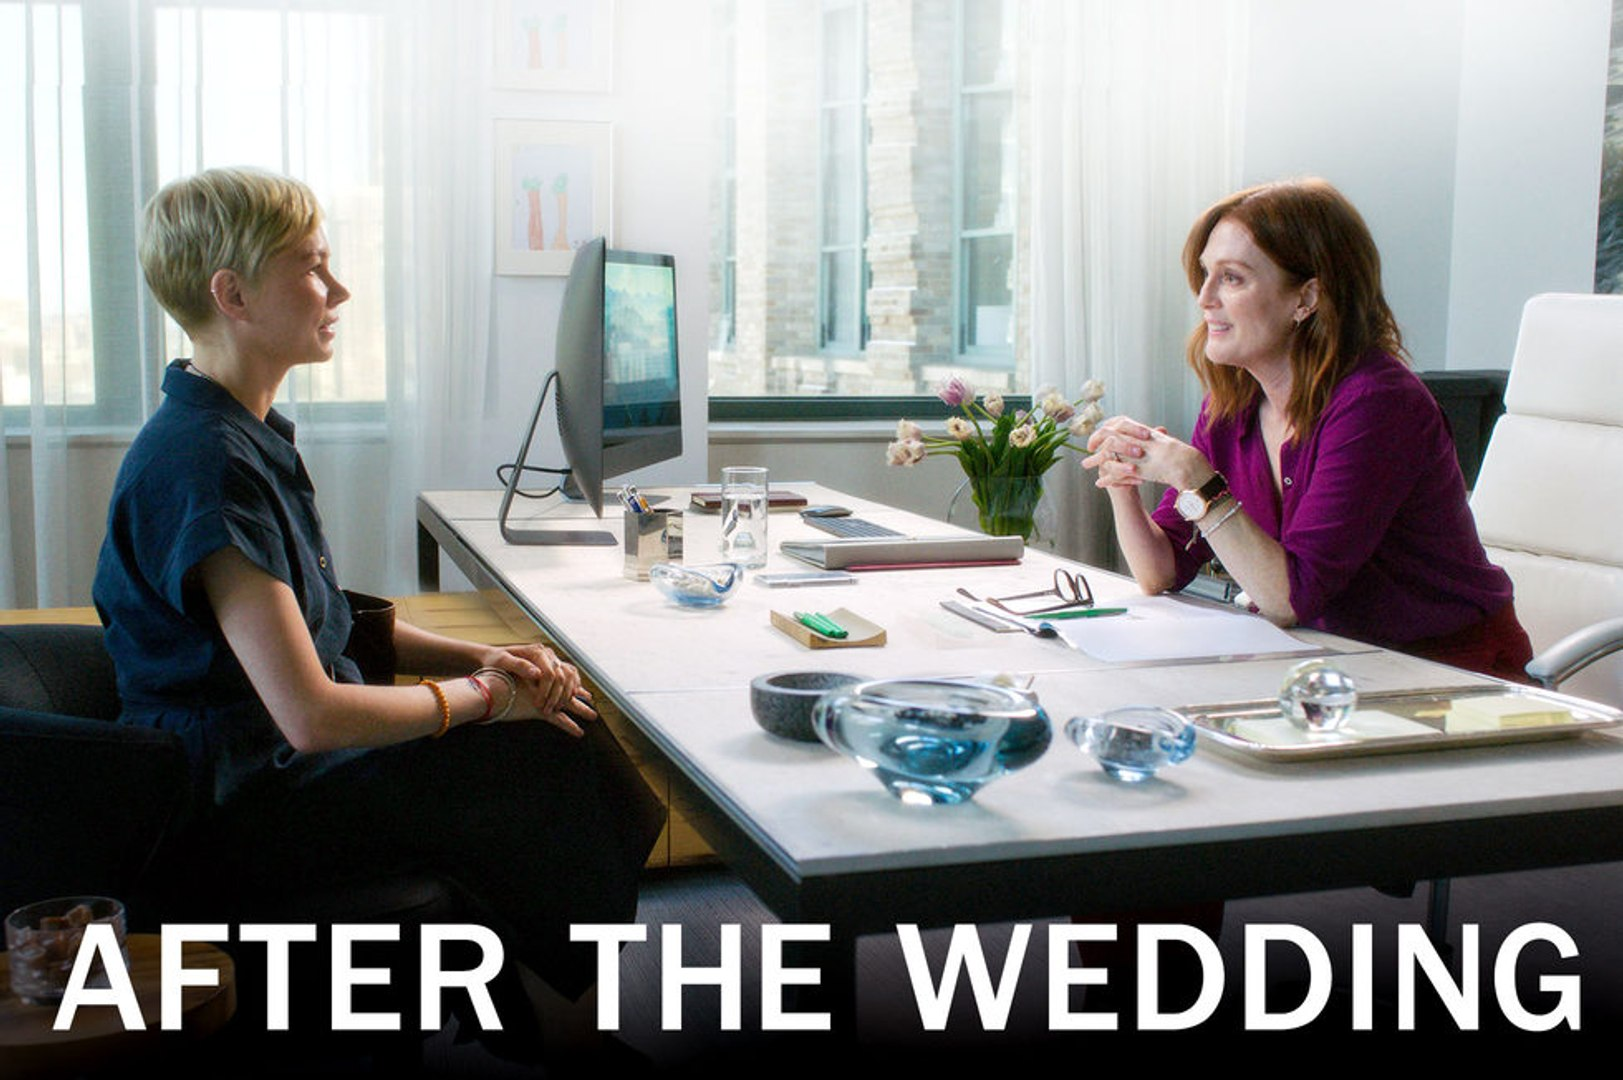 After The Wedding Trailer 2019 Video Dailymotion